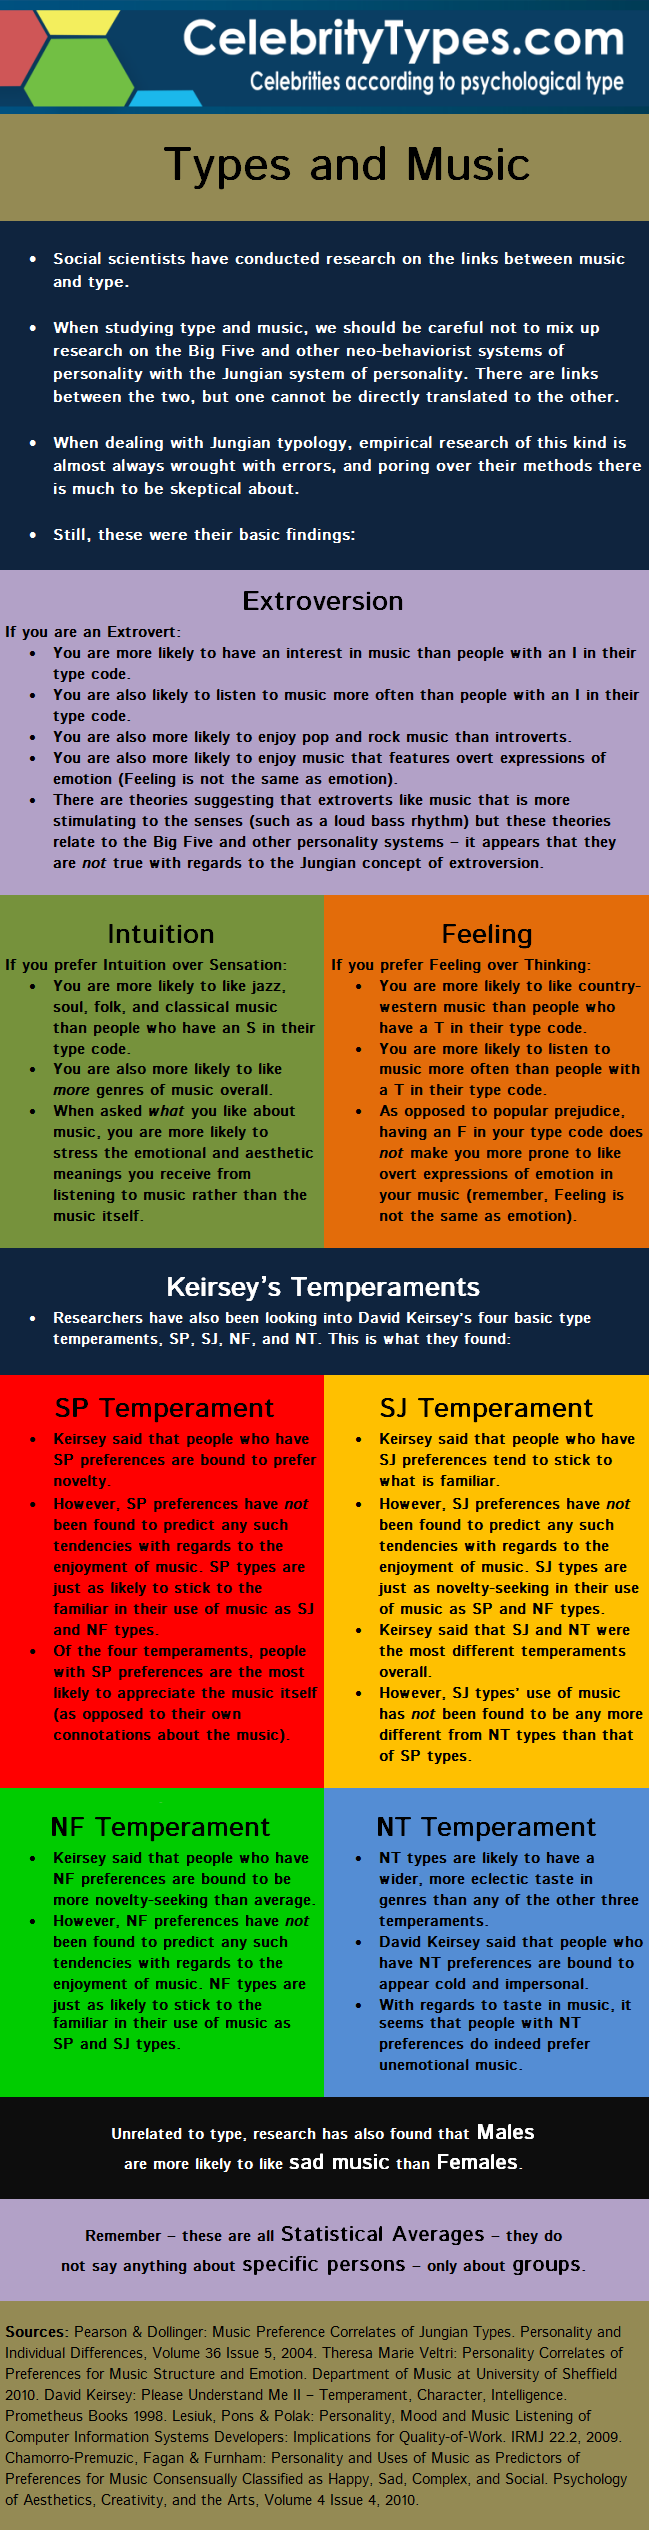 Kerisey's Music Taste based on the four temperaments - I'm an INTP and I find this to be quite accurate and interesting.